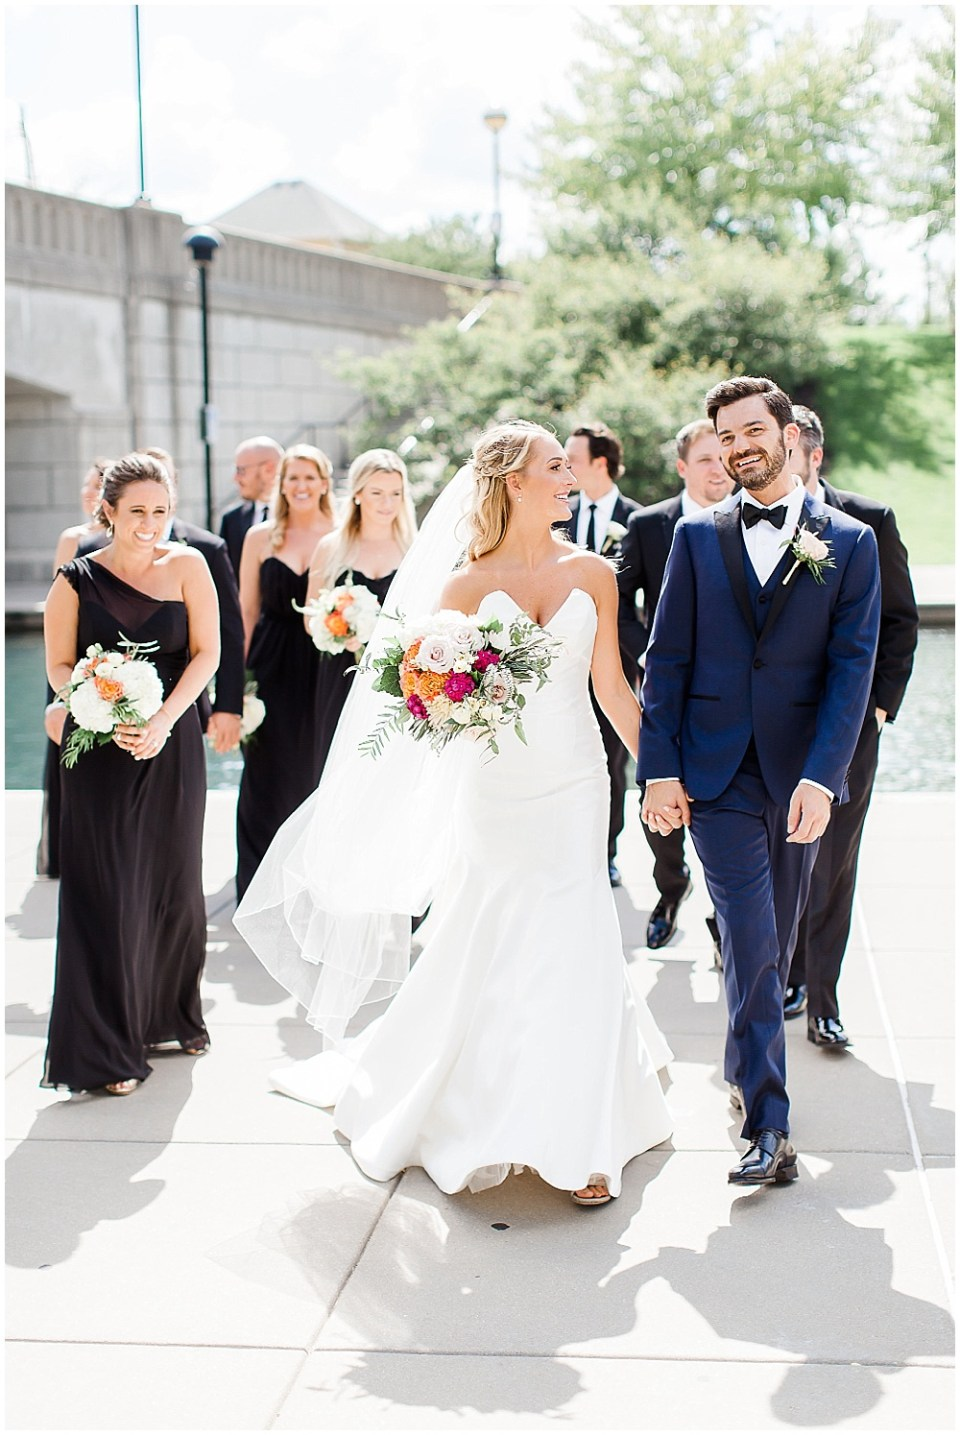 Bridal party portraits | Canal 337 wedding by Jenny Haas Photography & Jessica Dum Wedding Coordination